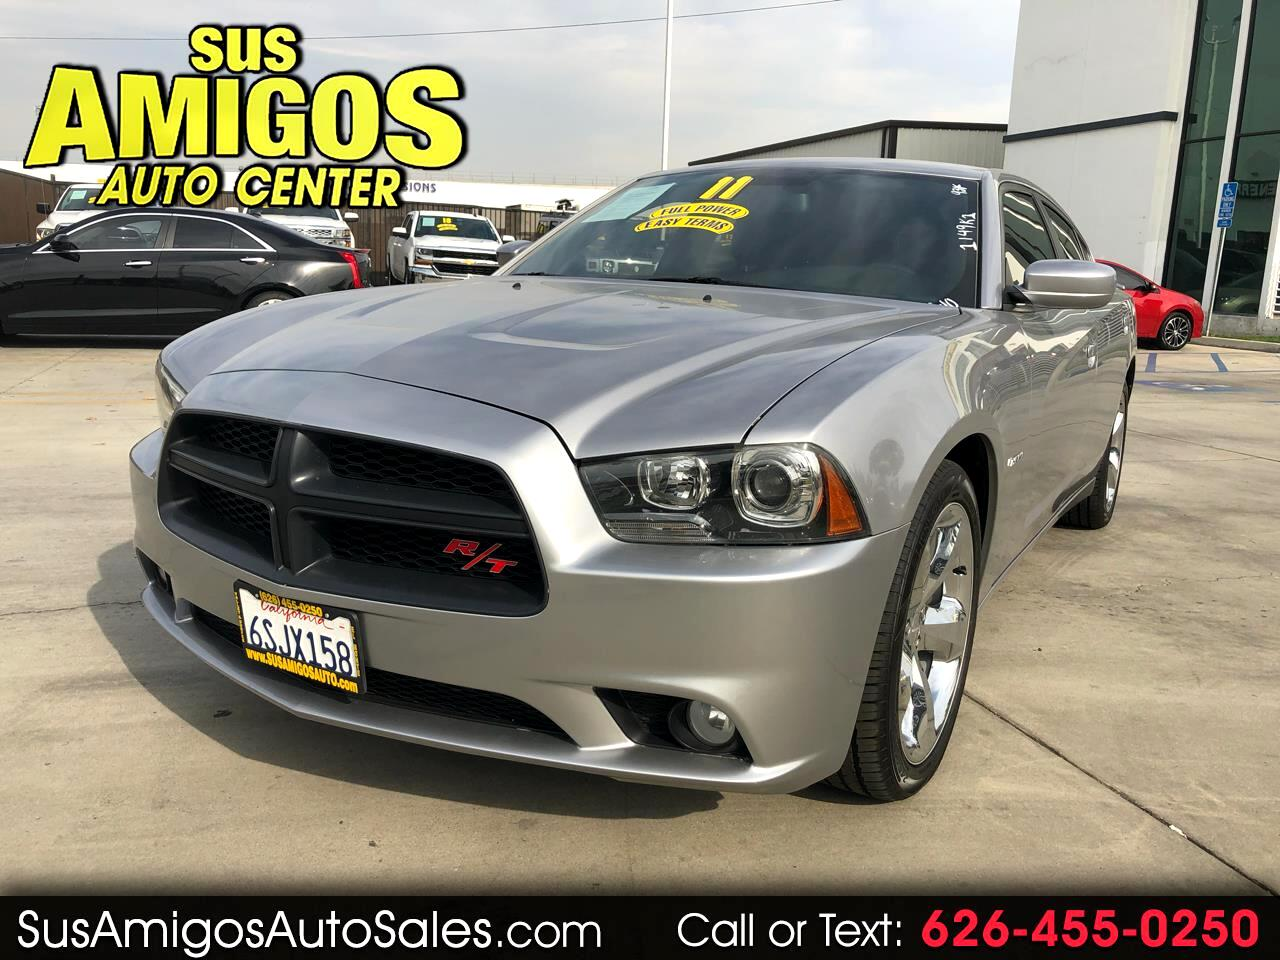 2011 Dodge Charger 4dr Sdn Road/Track RWD